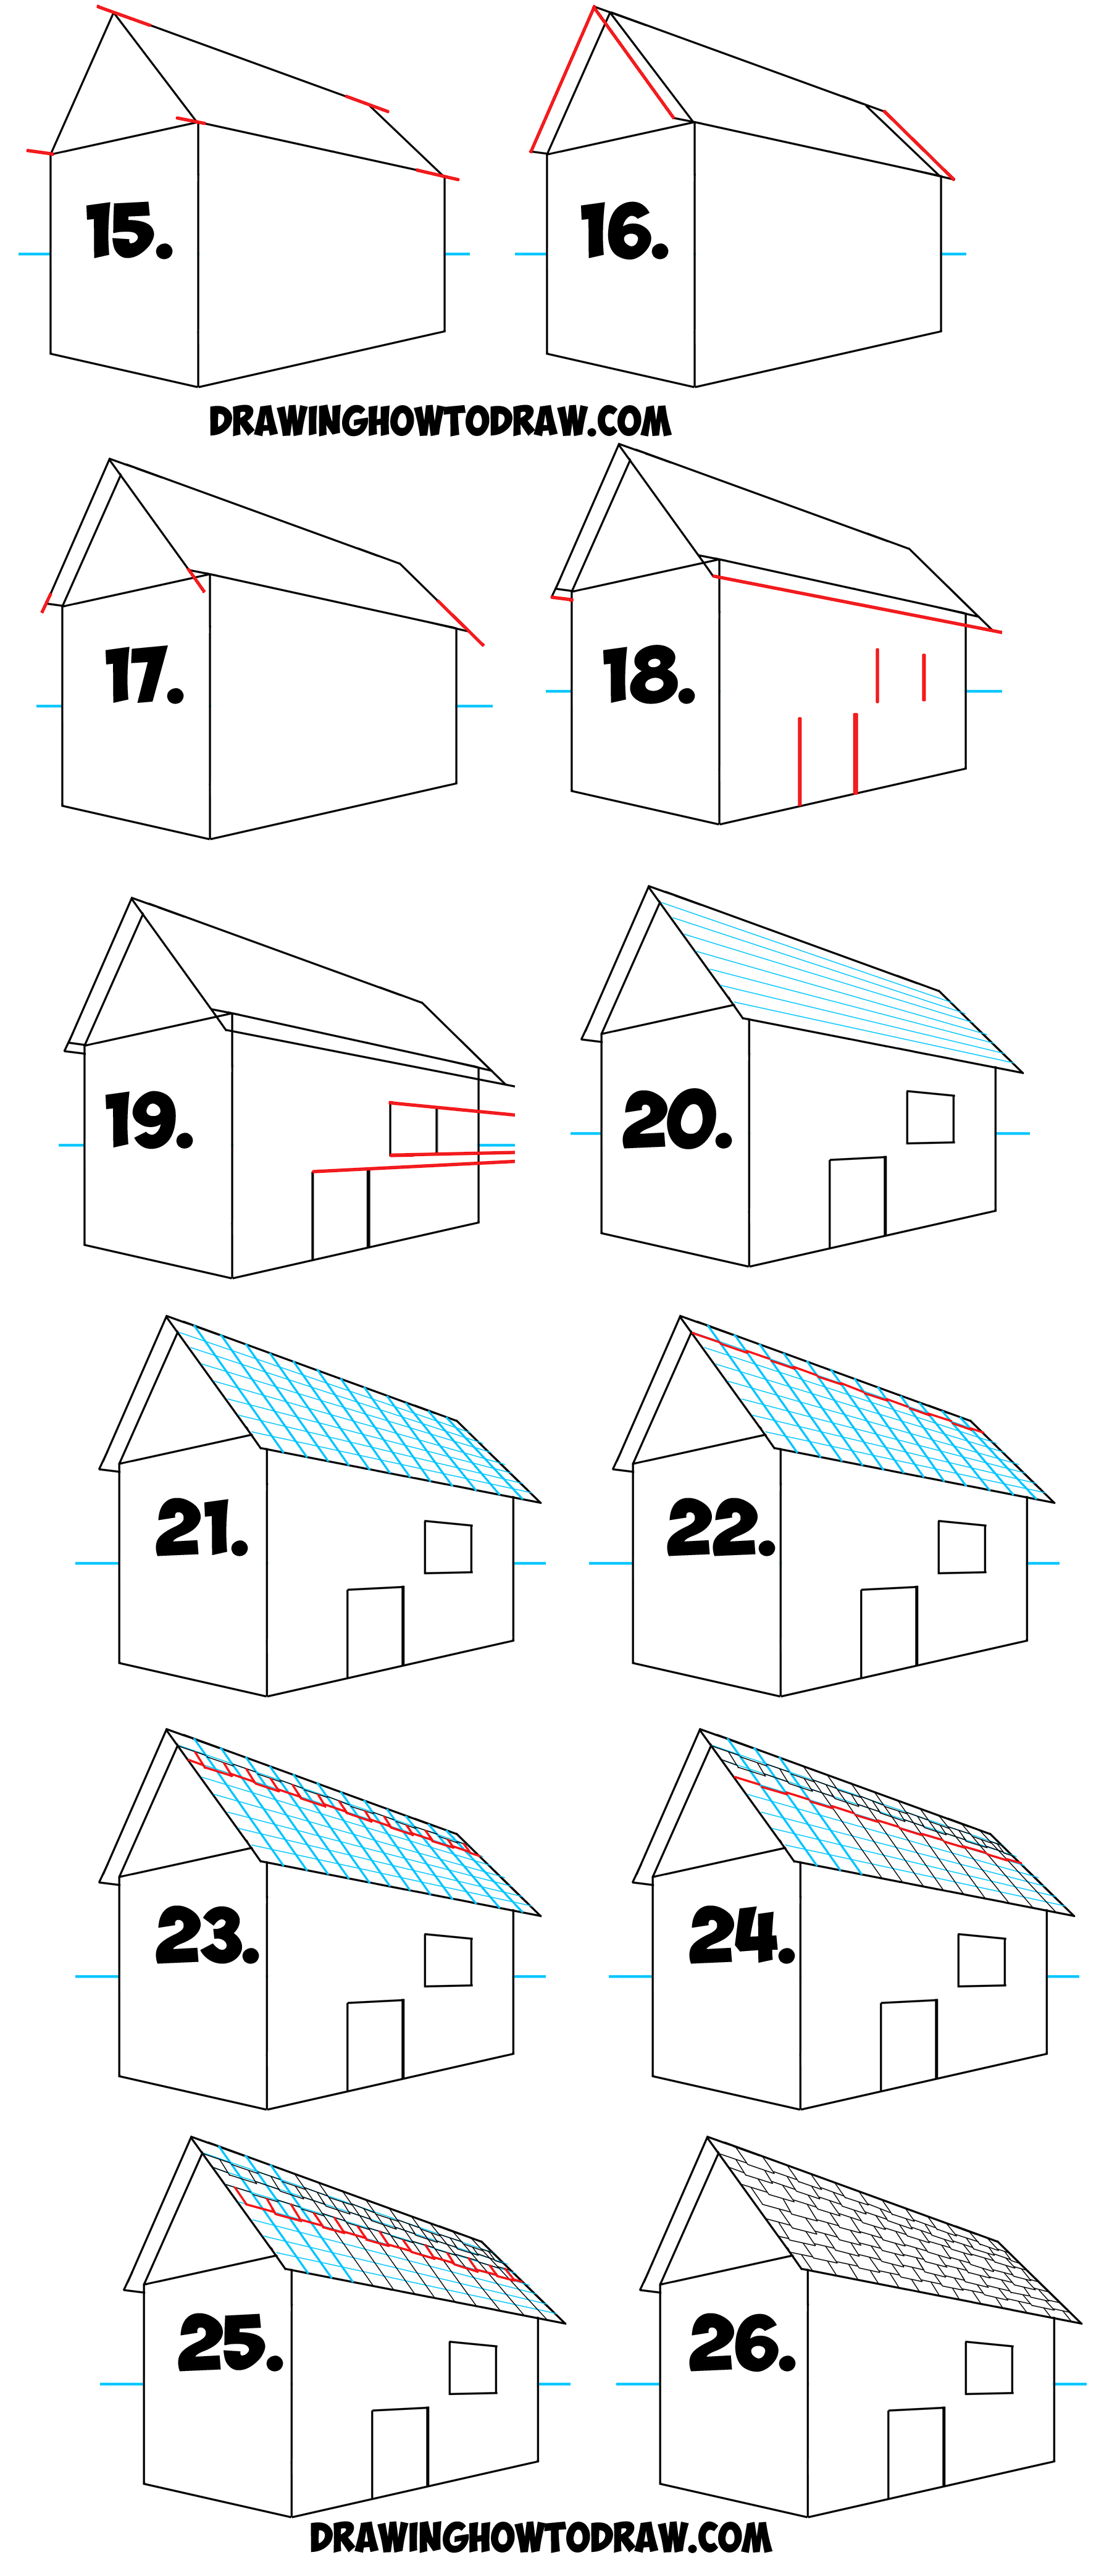 Learn How to Draw a Roof and Shingles with 2 Point Perspective - Simple Steps Drawing  sc 1 st  How to Draw Step by Step Drawing Tutorials & How to Draw a Roof and Shingles with Two Point Perspective - Easy ... memphite.com